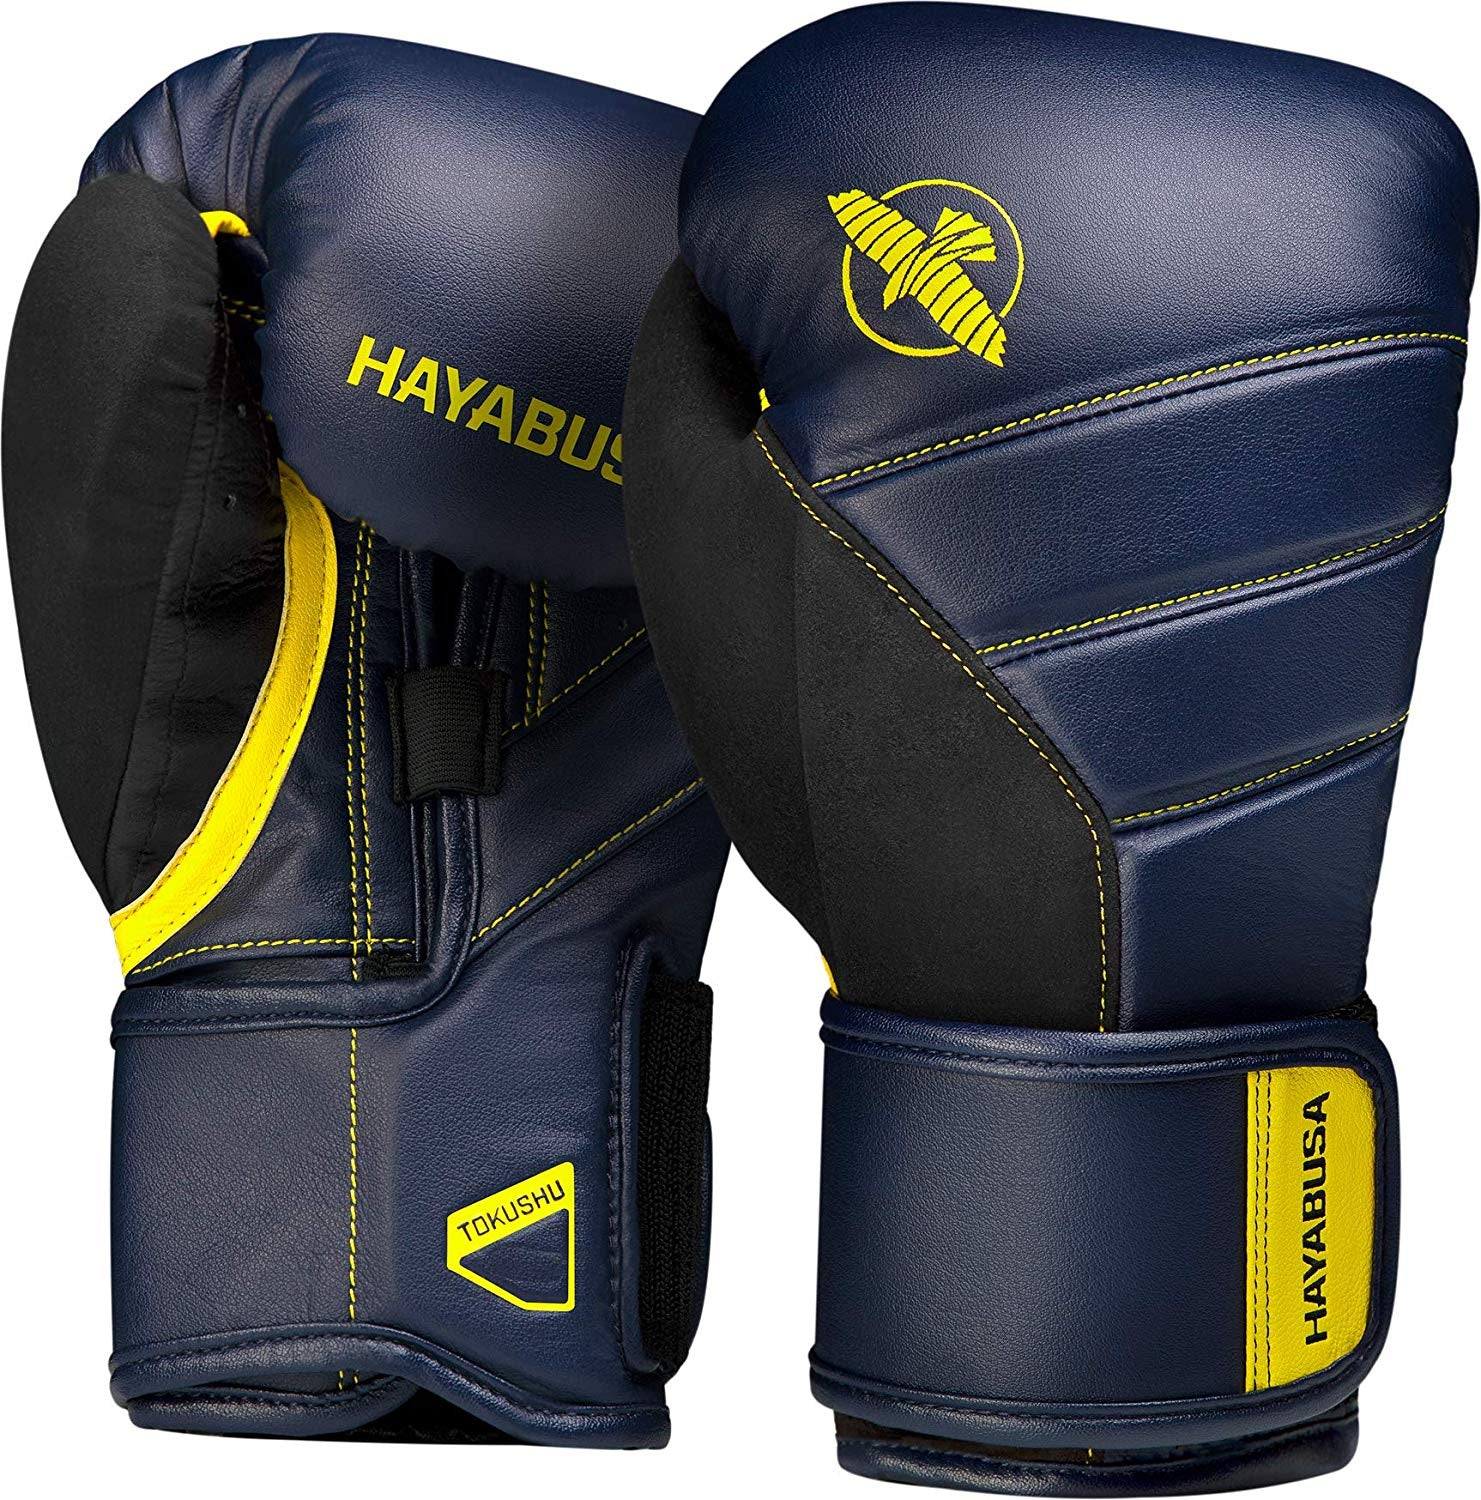 HAYABUSA GLOVES BOXING T3 NAVY/YELLOW - MSM FIGHT SHOP